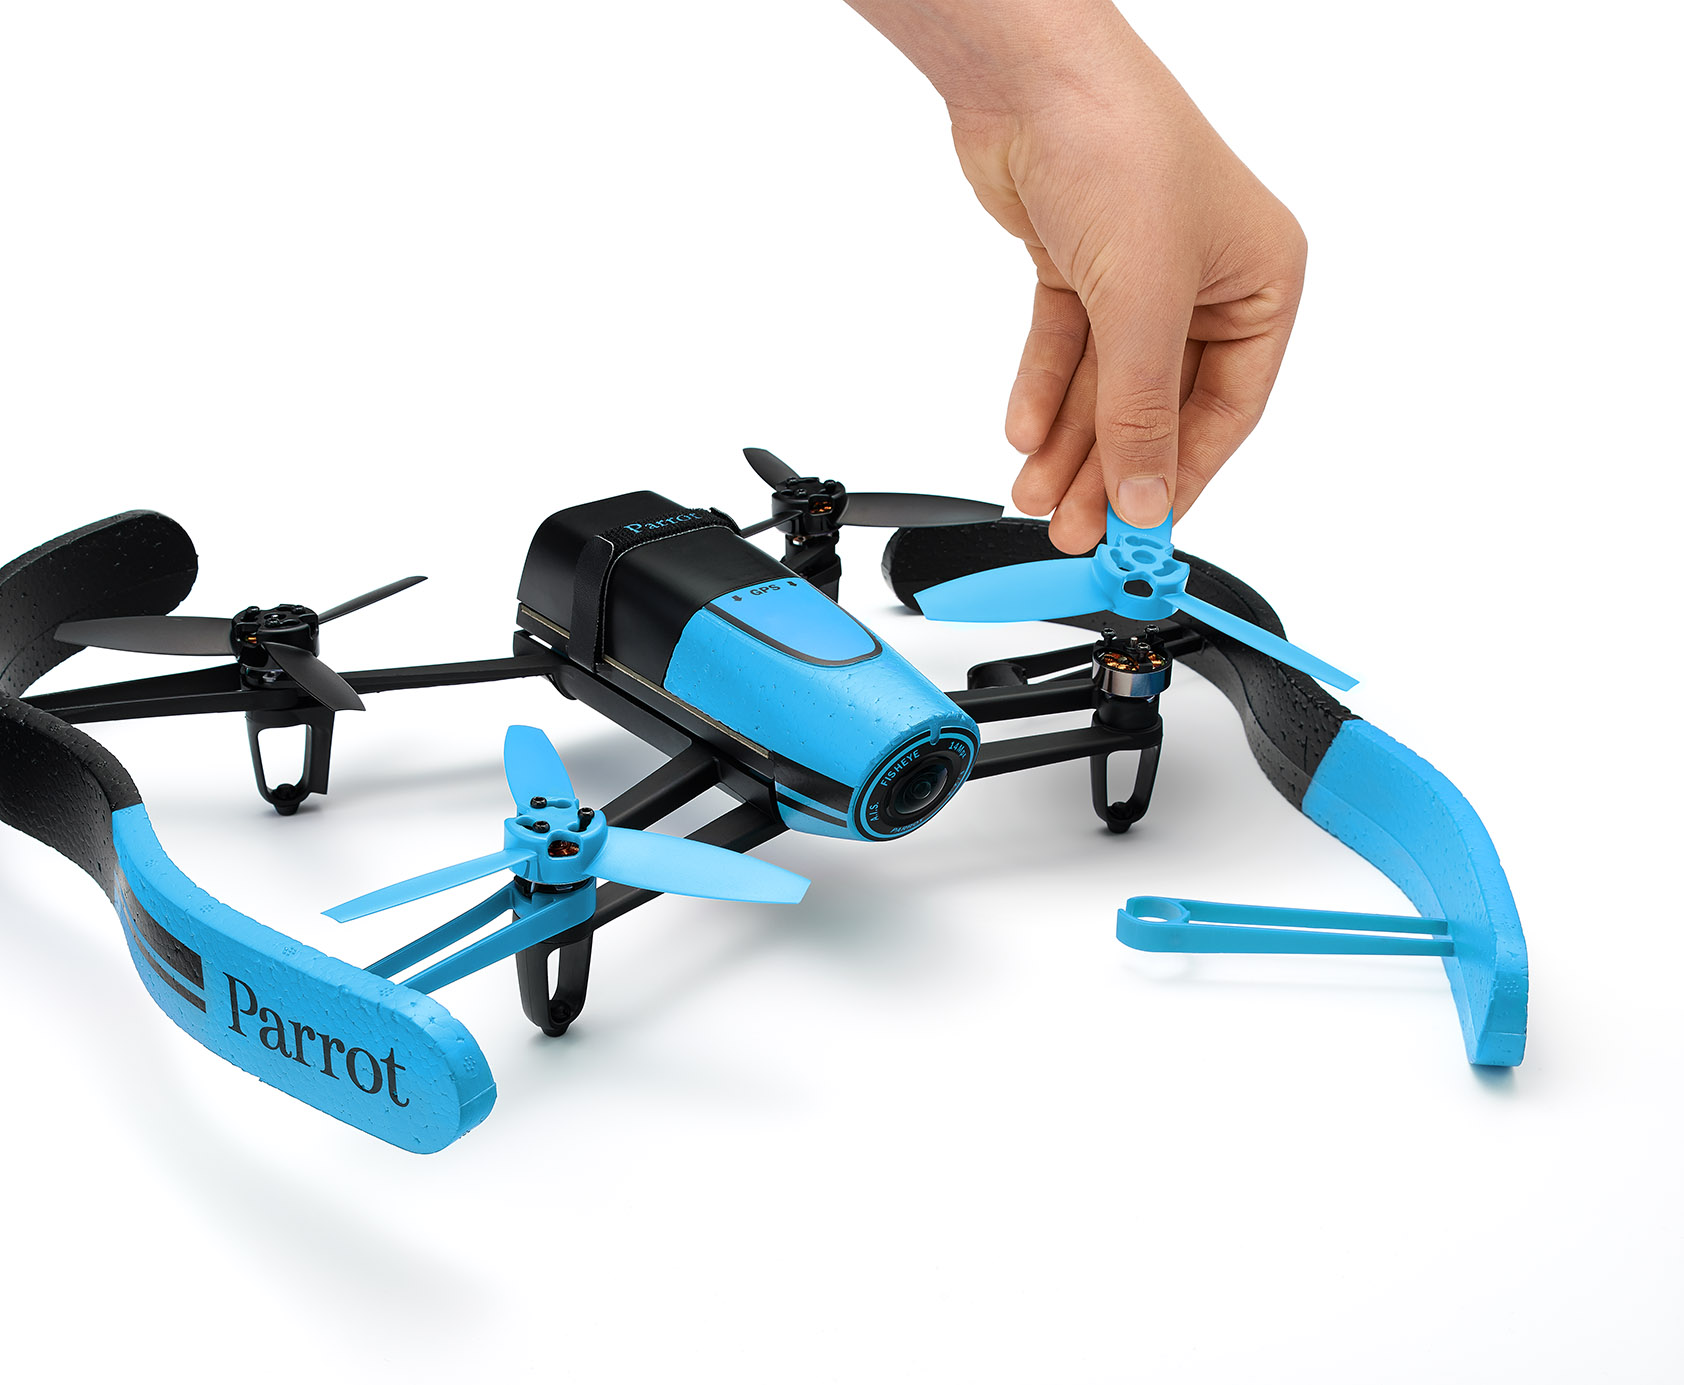 big_parrot-bebop-drone-new-04.jpg